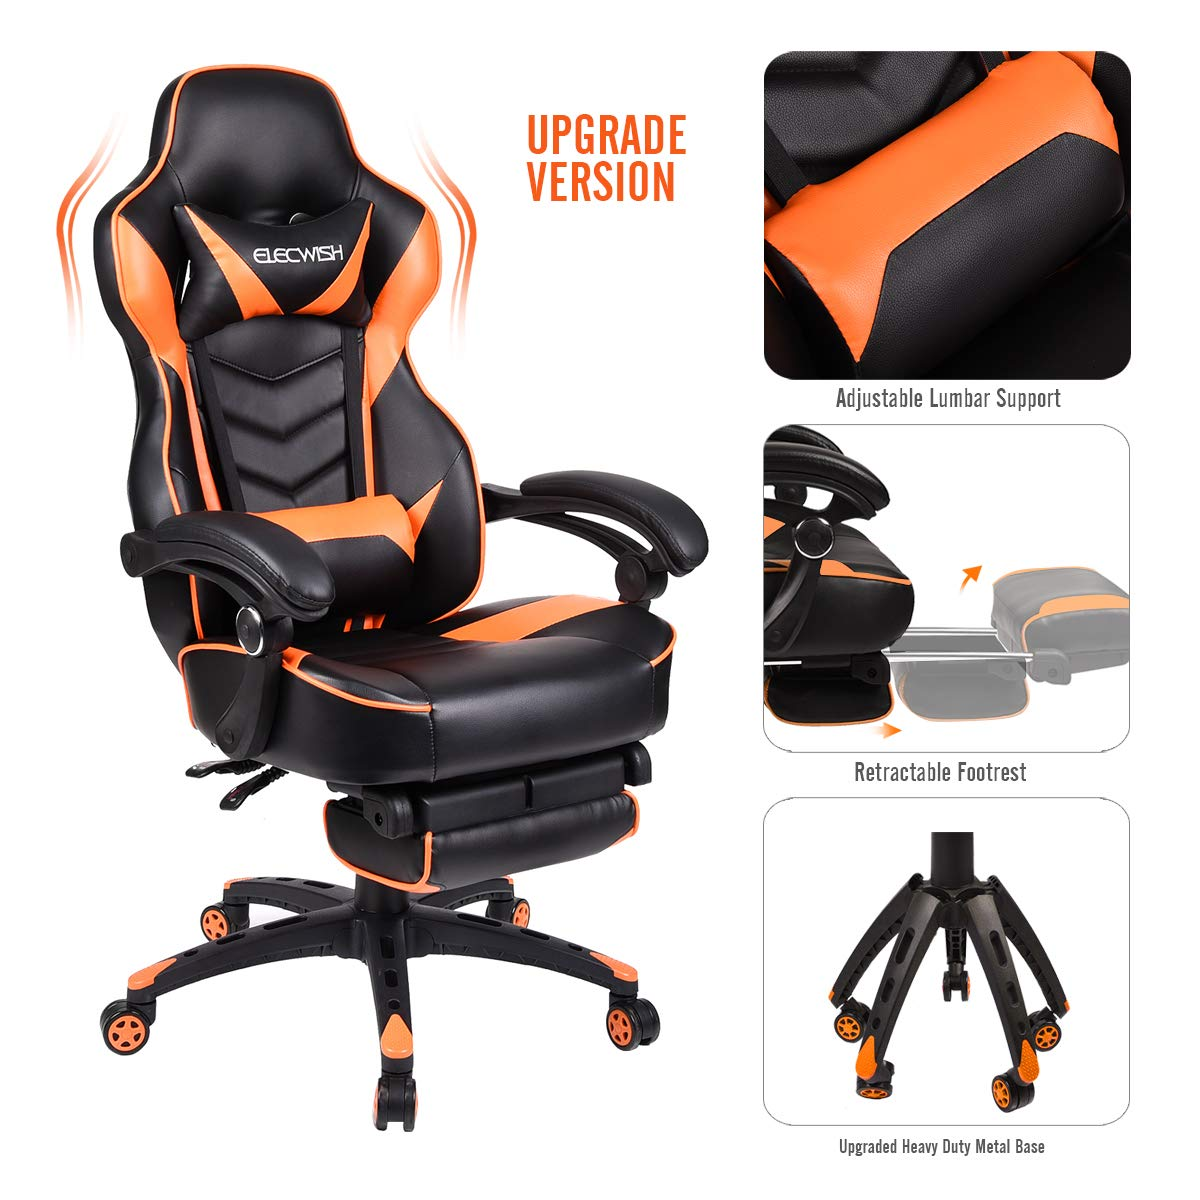 Video Gaming Chair Racing Office - Reclining PU Leather High Back Ergonomic Adjustable Swivel Executive Computer Desk Large Size Footrest Headrest Lumbar Support Adjustable arms Cushion (Orange)